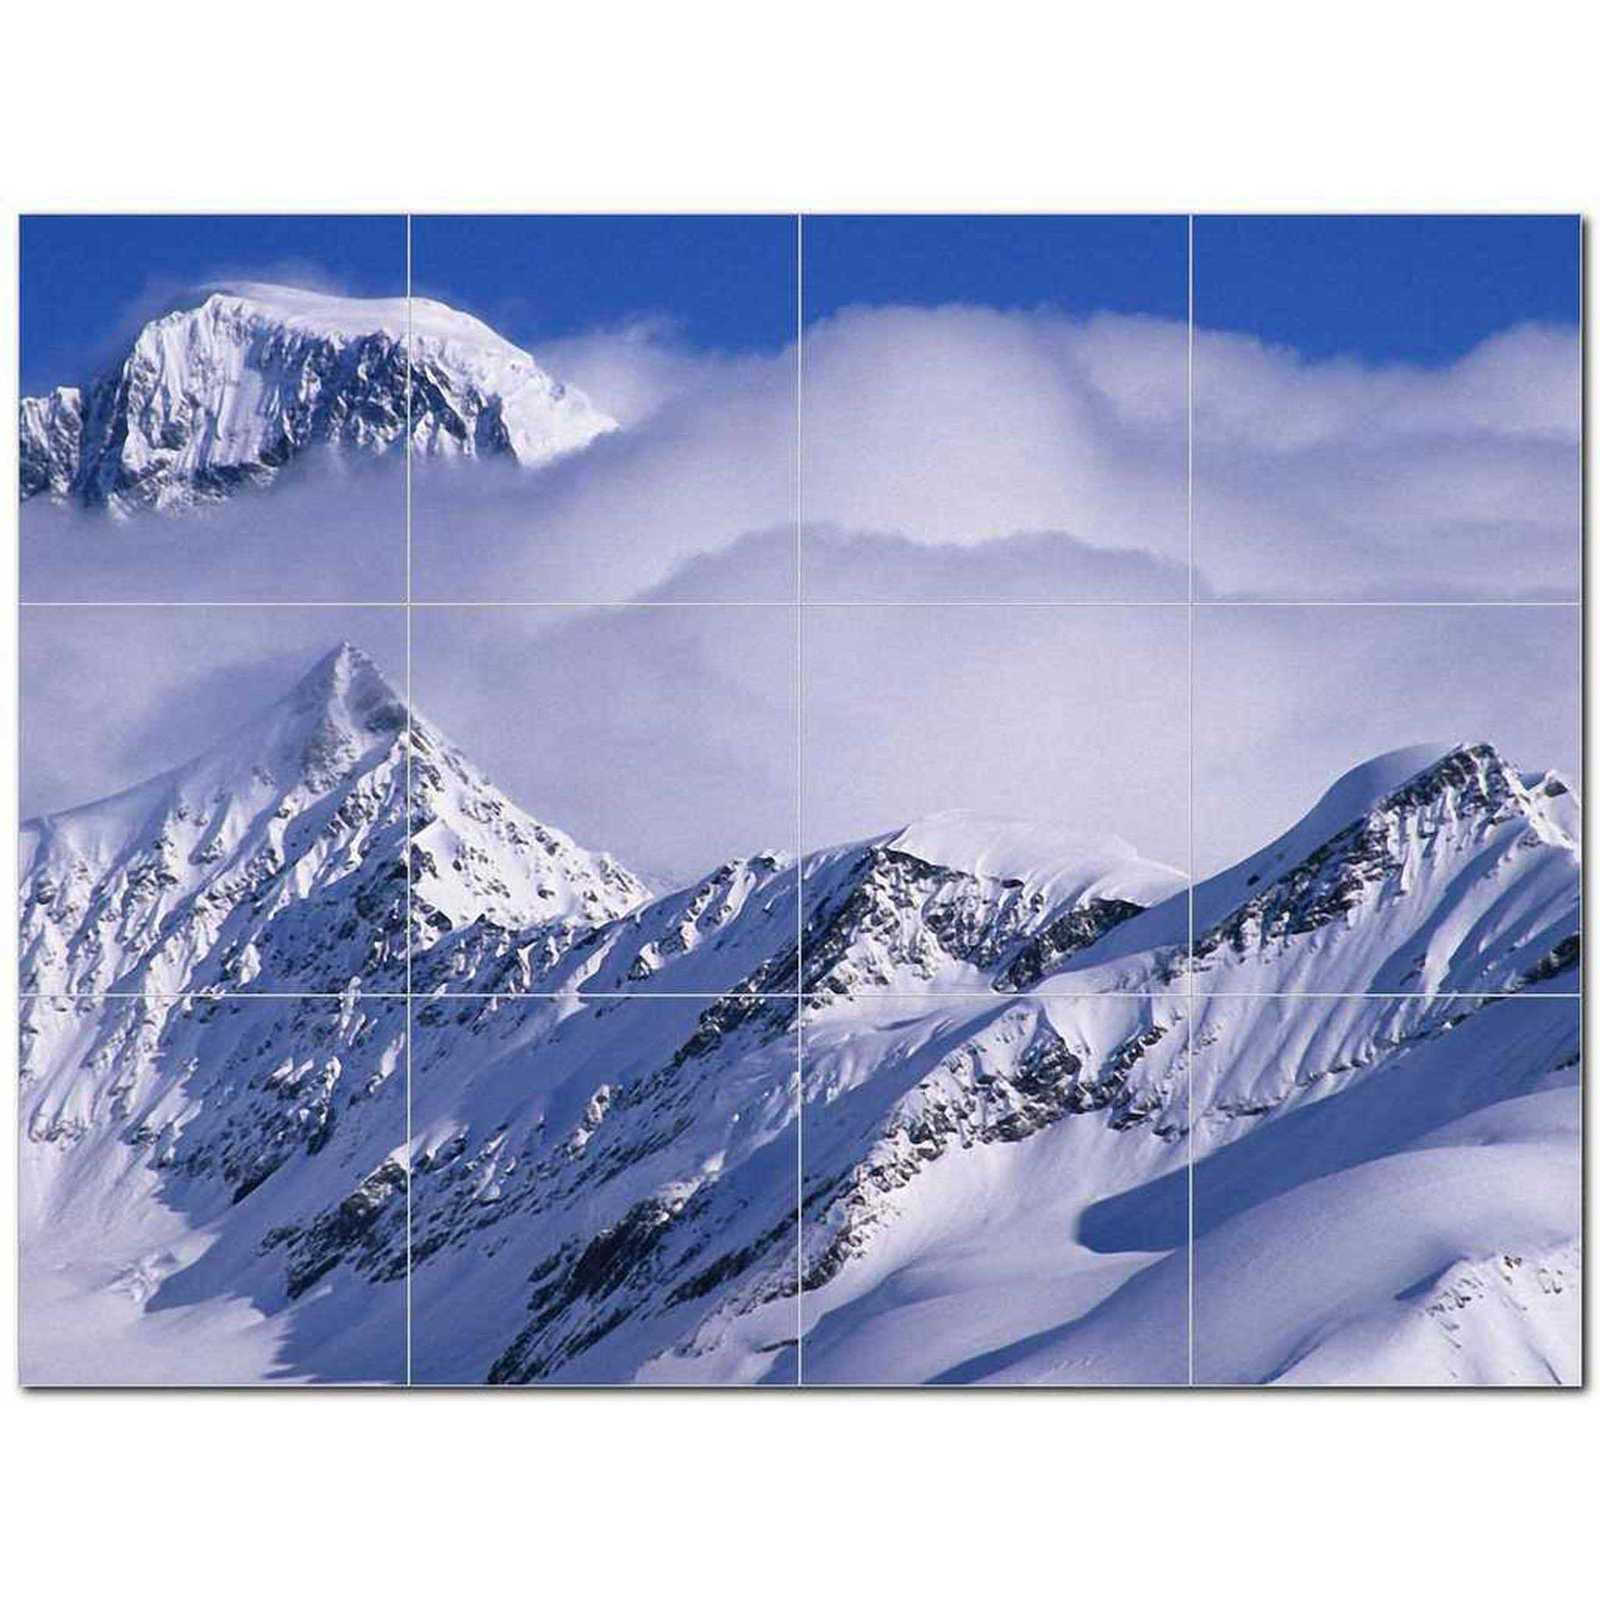 Primary image for Mountain Photo Ceramic Tile Mural Kitchen Backsplash Bathroom Shower BAZ405500